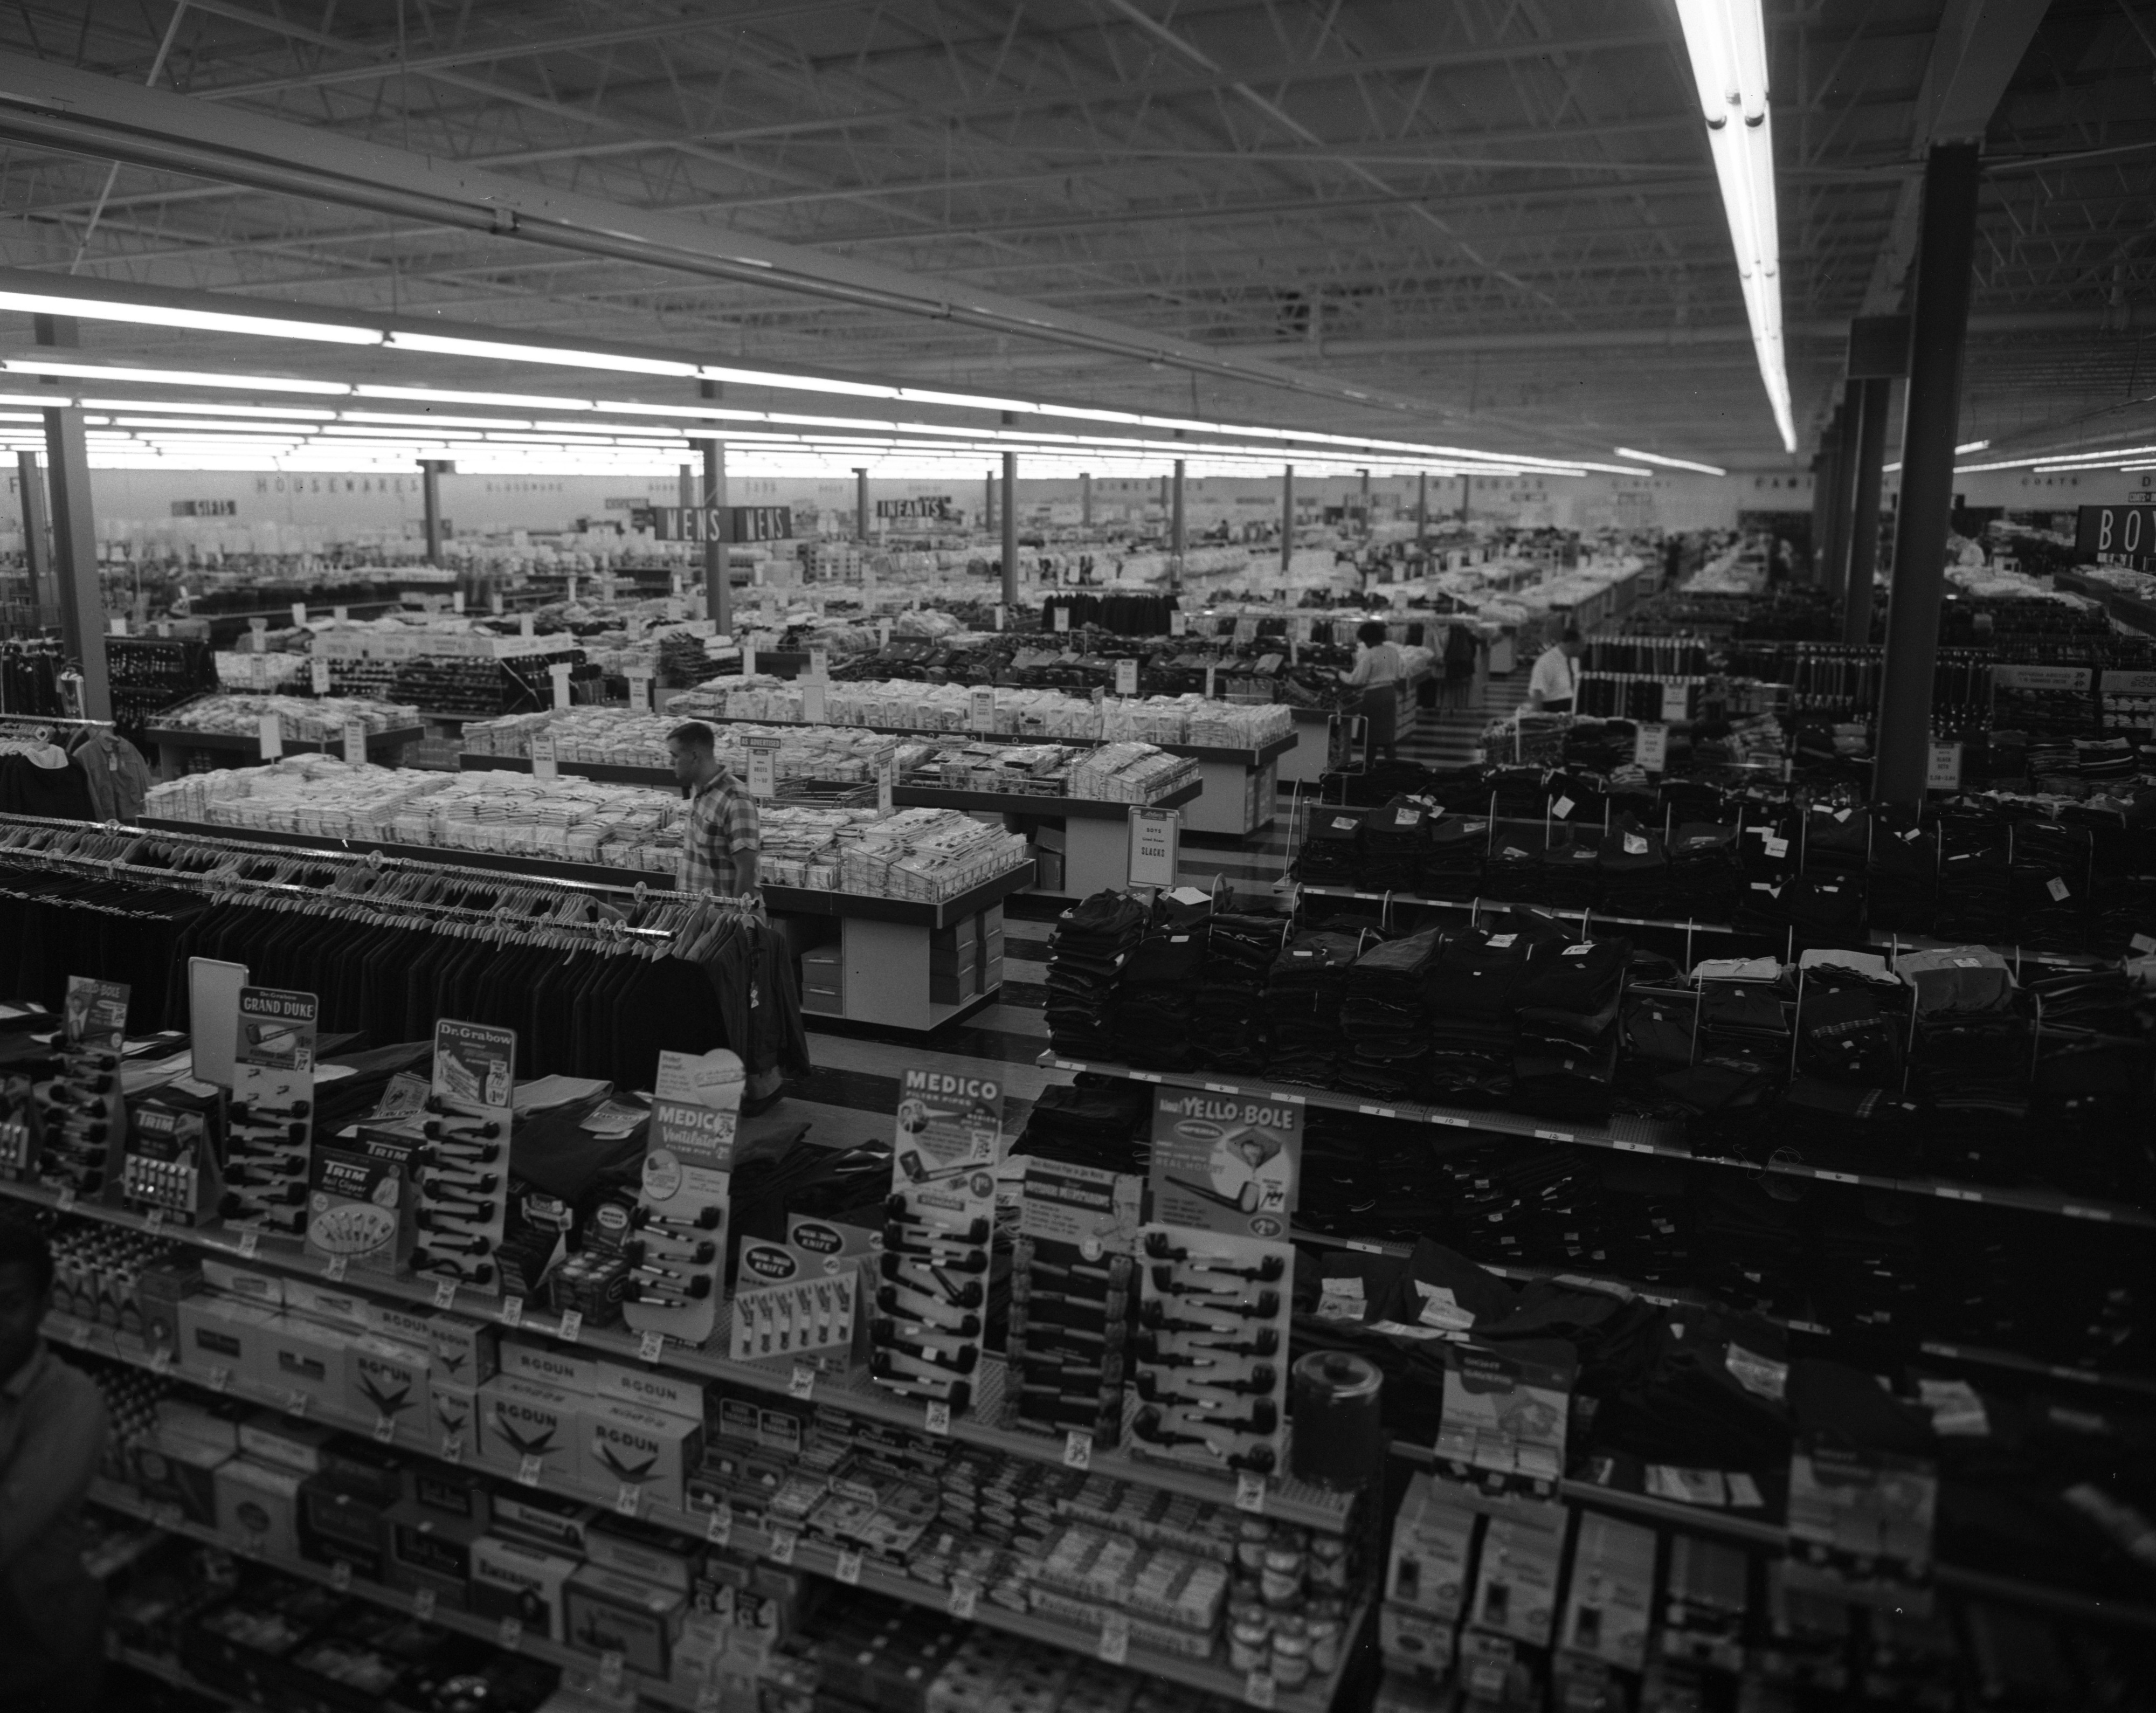 Arlan's Self-Service Discount Department Store in Westgate Shopping Center, 2465 W Stadium, August 1962 image